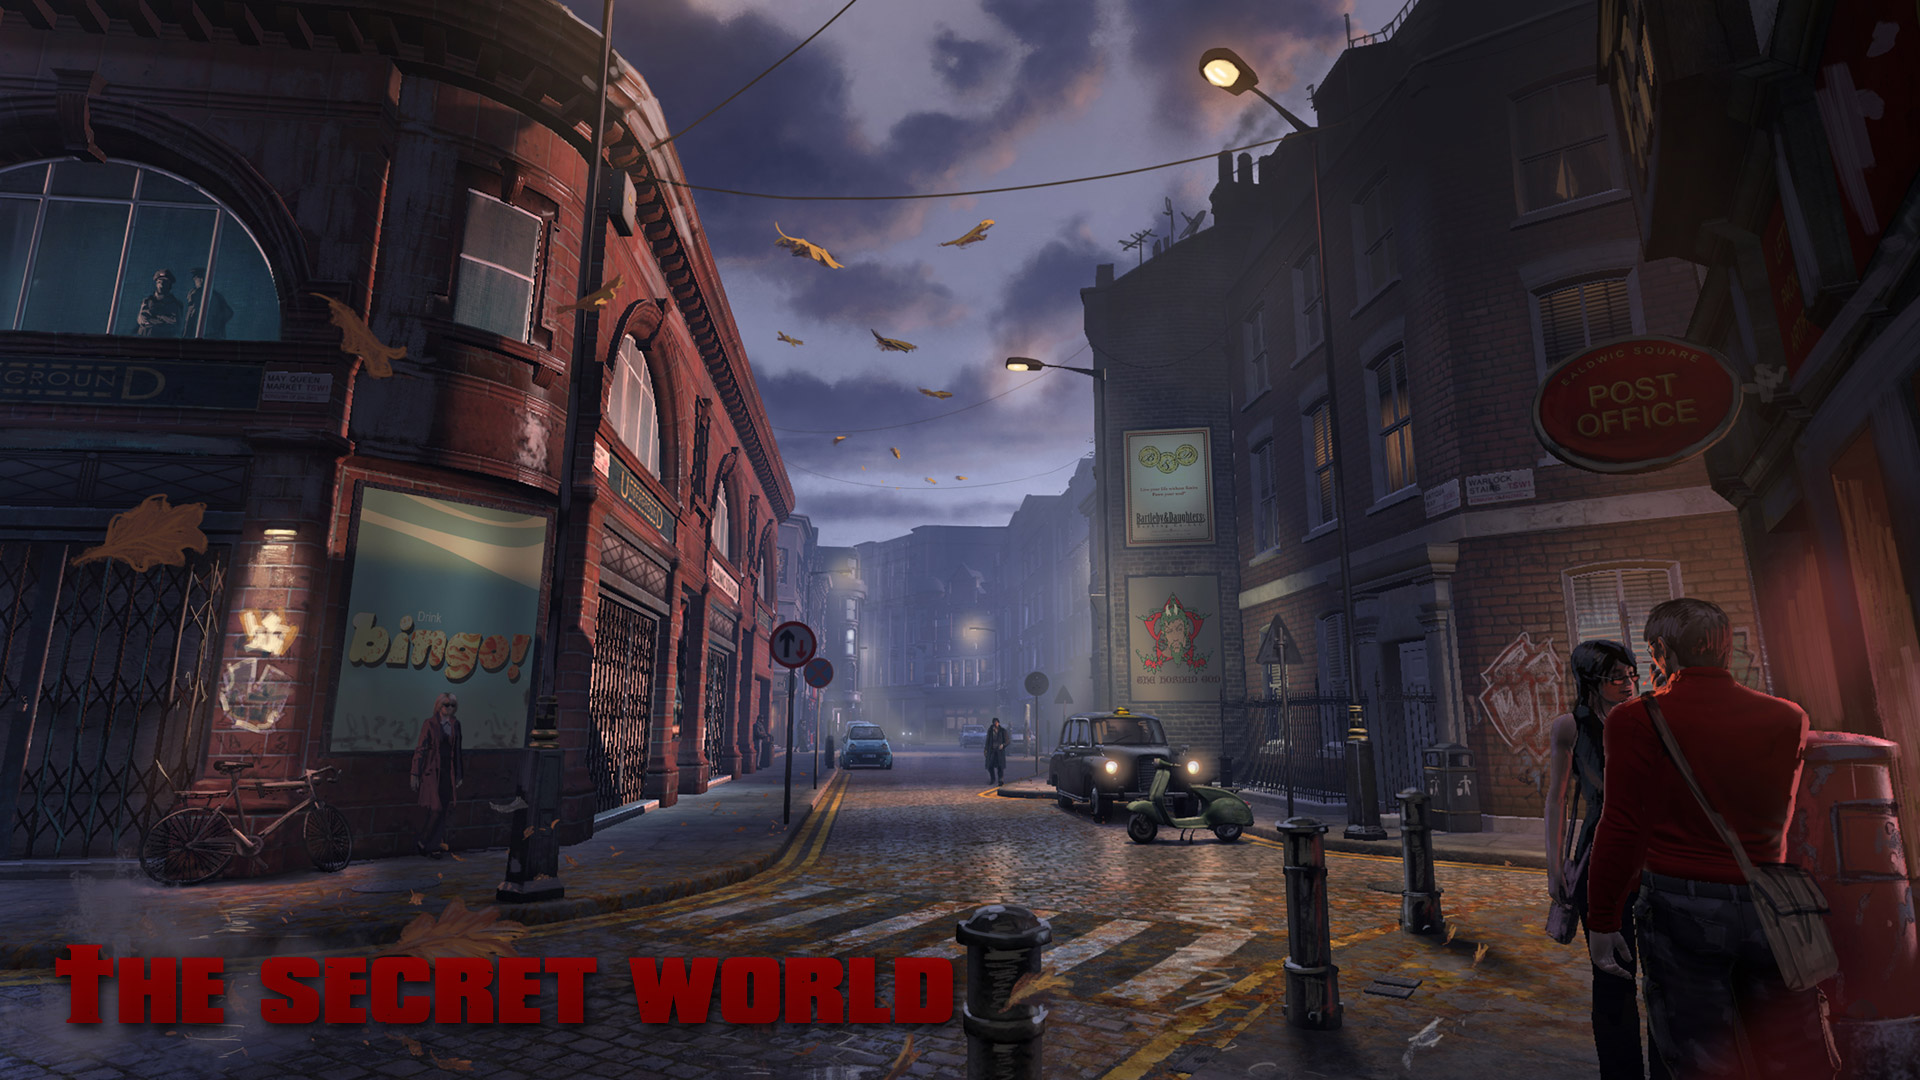 Free The Secret World Wallpaper in 1920x1080